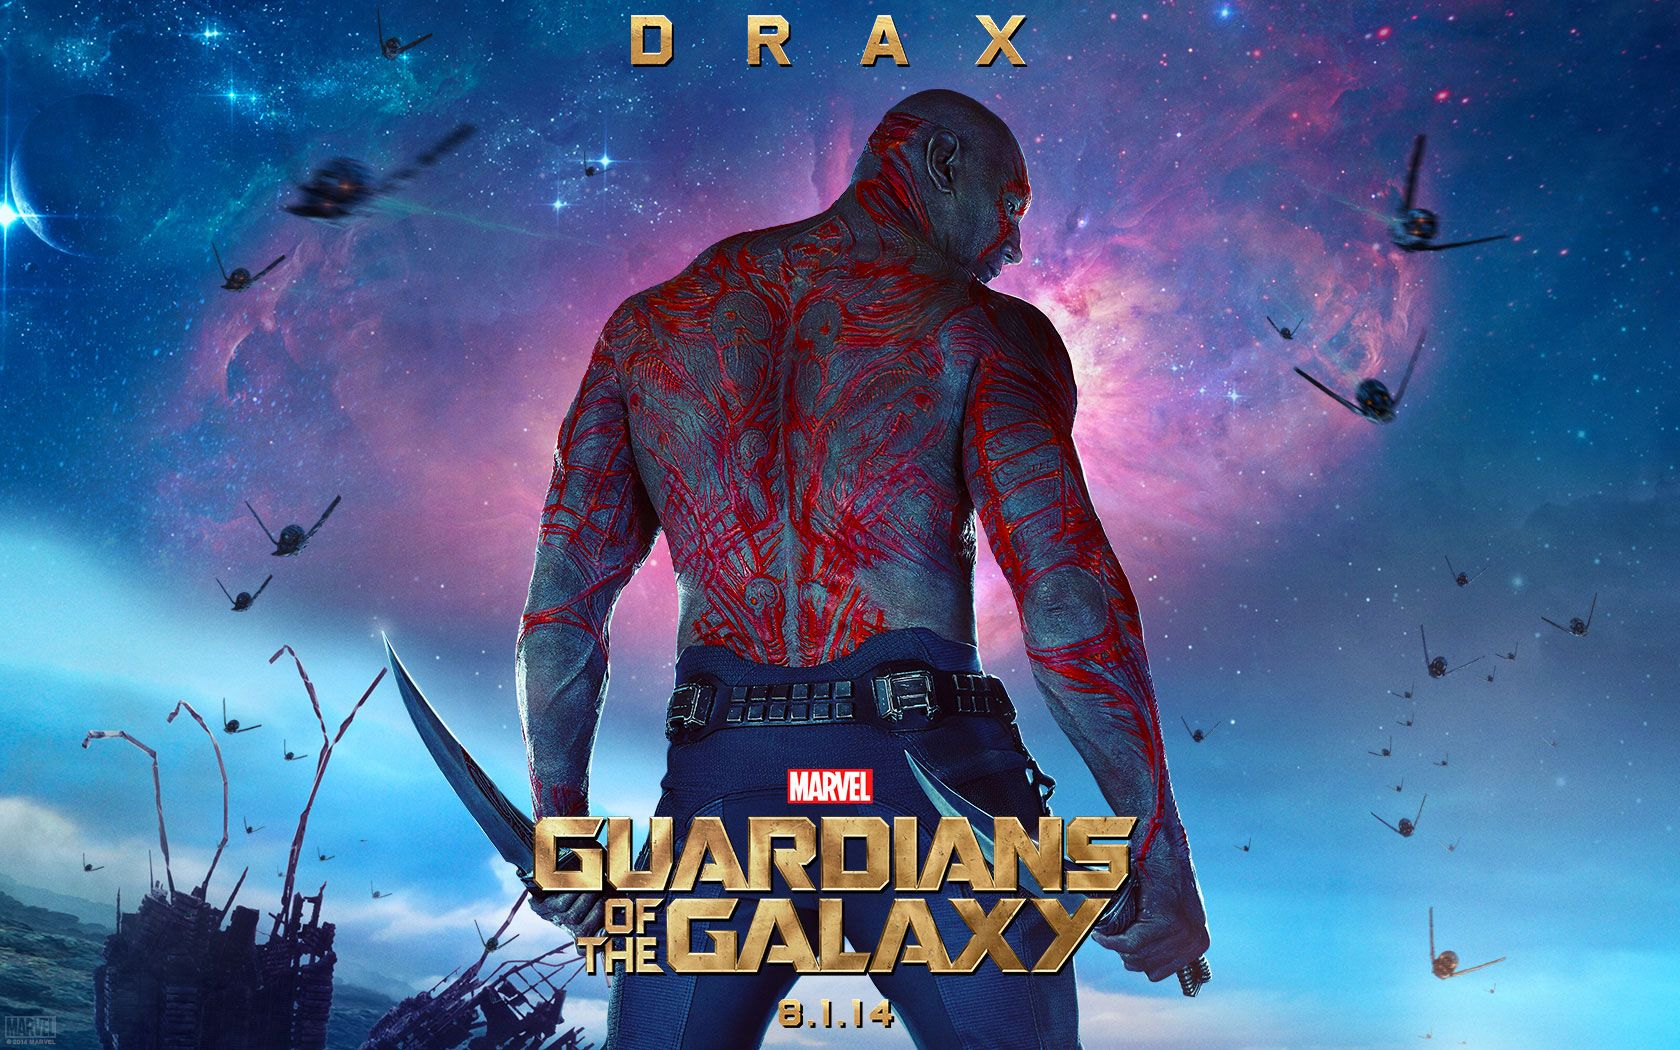 Drax the Destroyer to Have 'Significant' Role in 'Avengers 3'